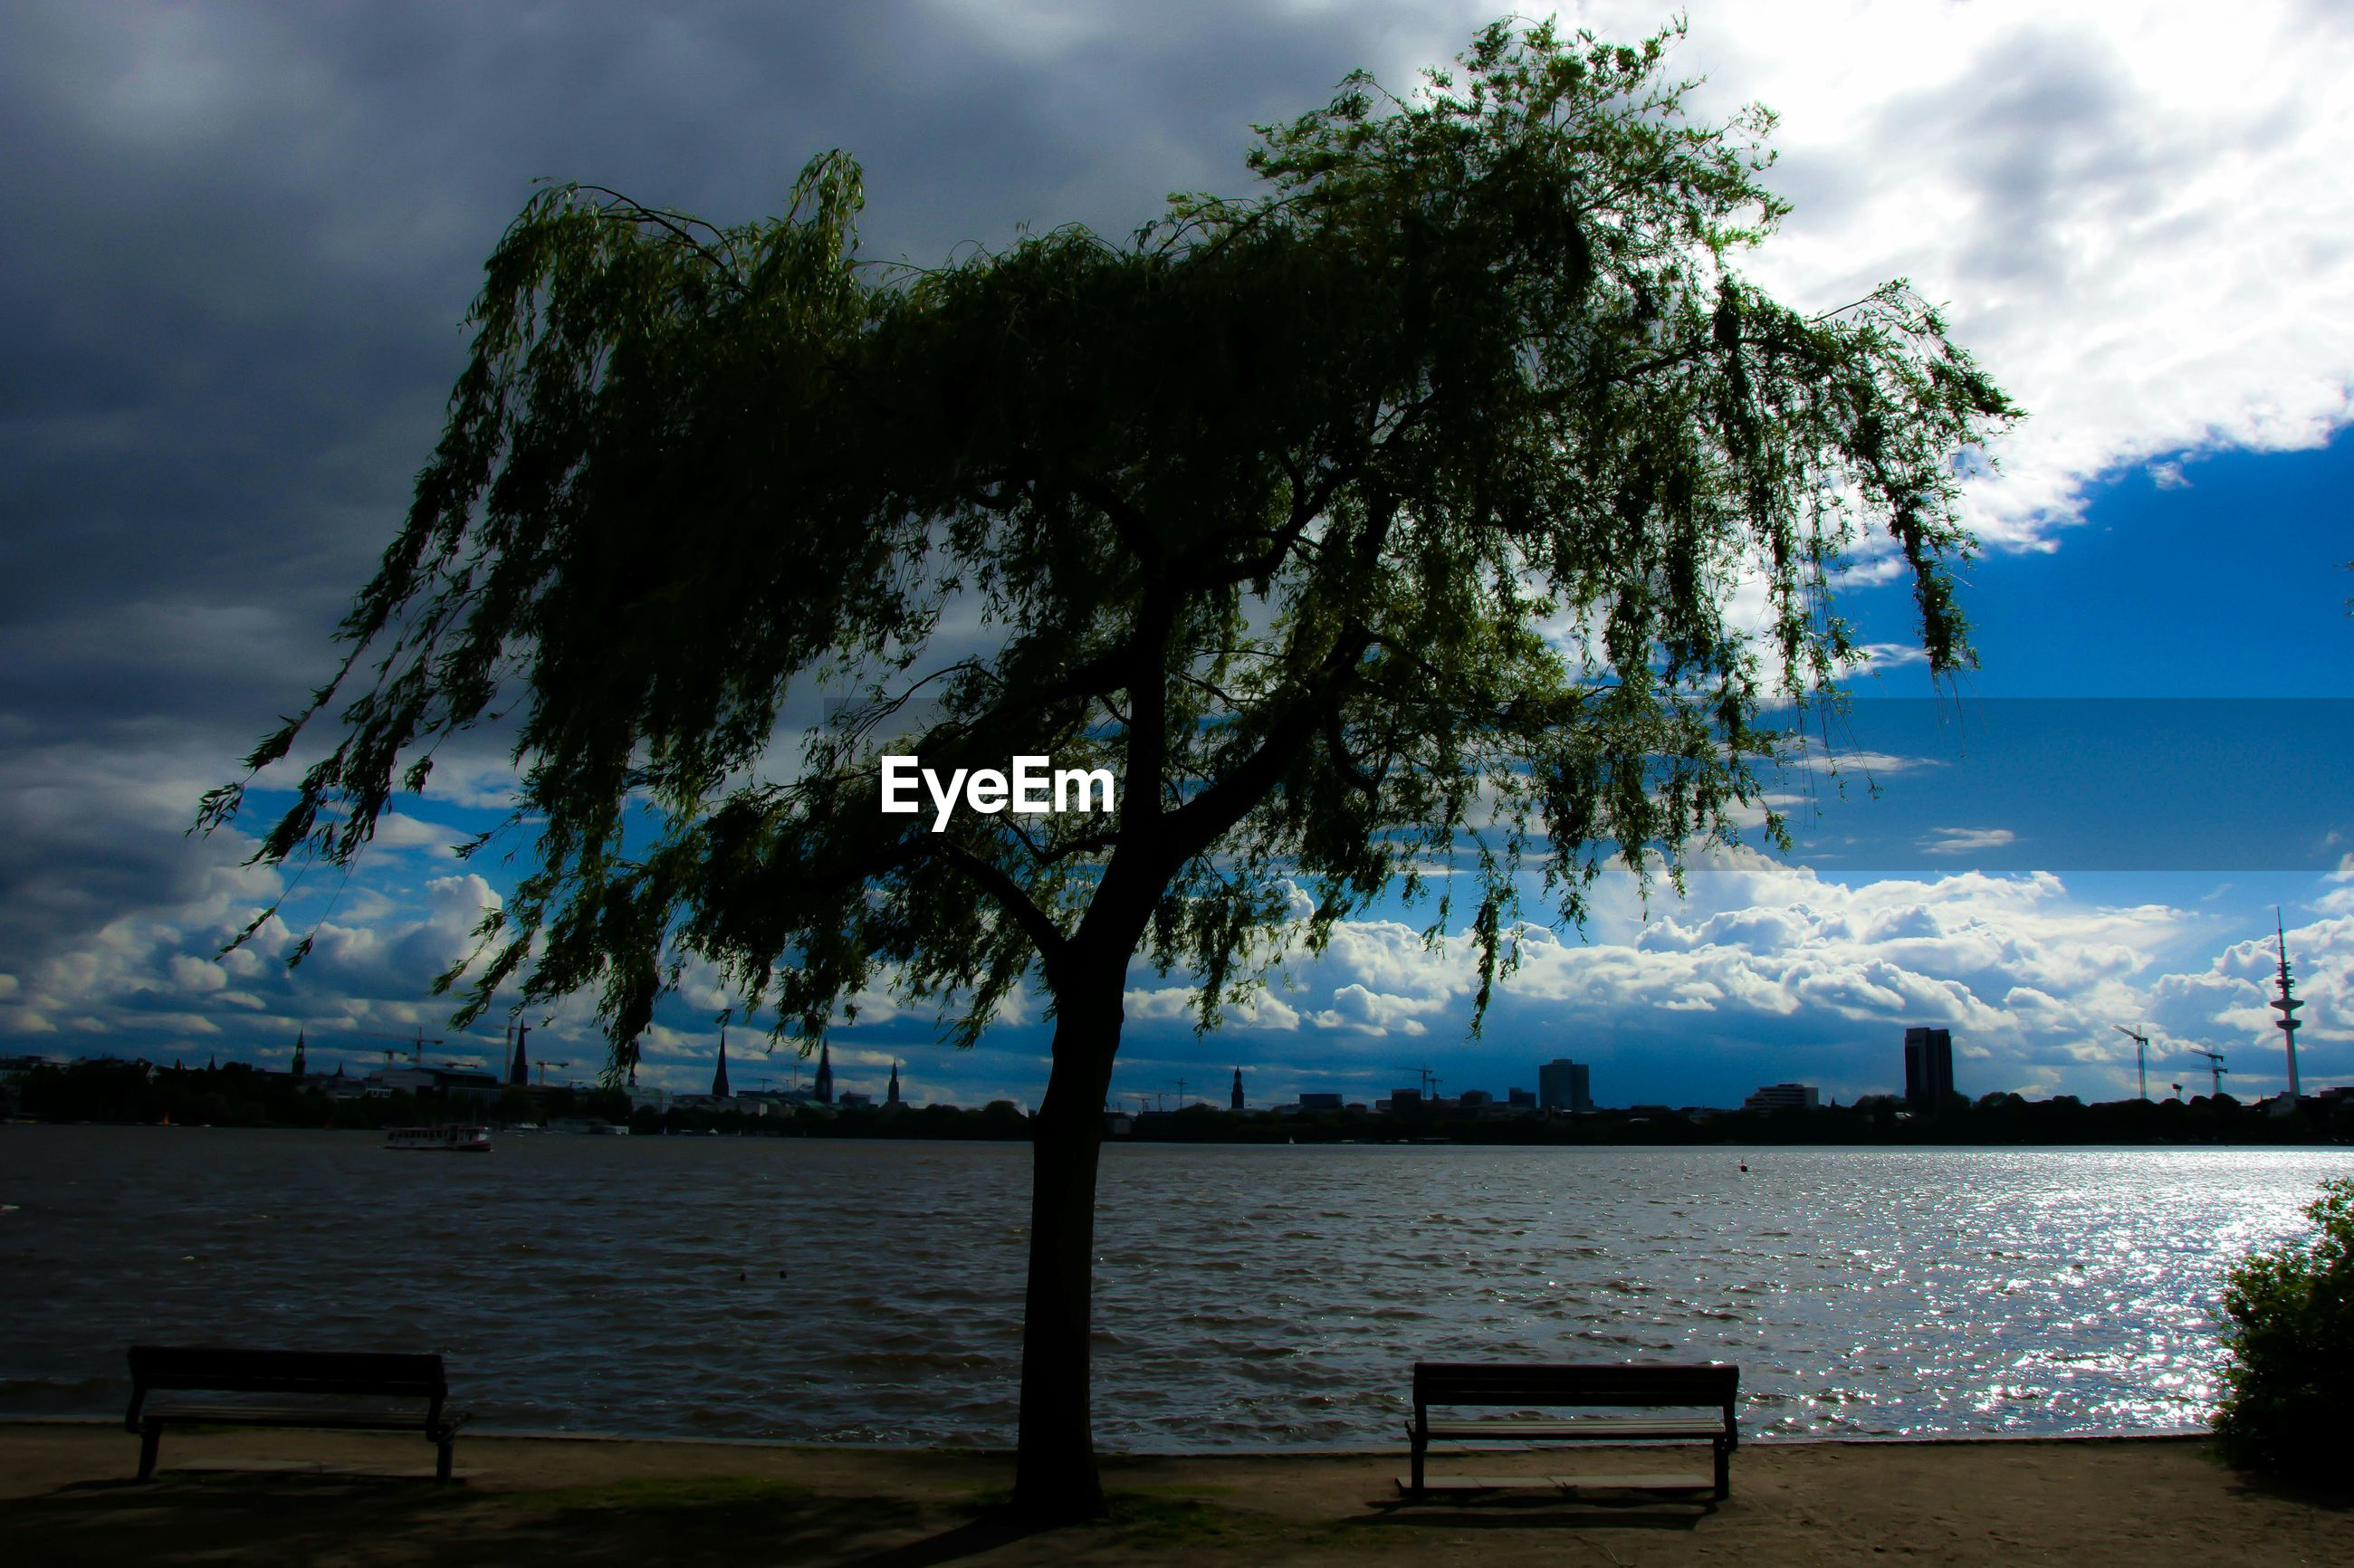 Tree on riverbank against cloudy sky